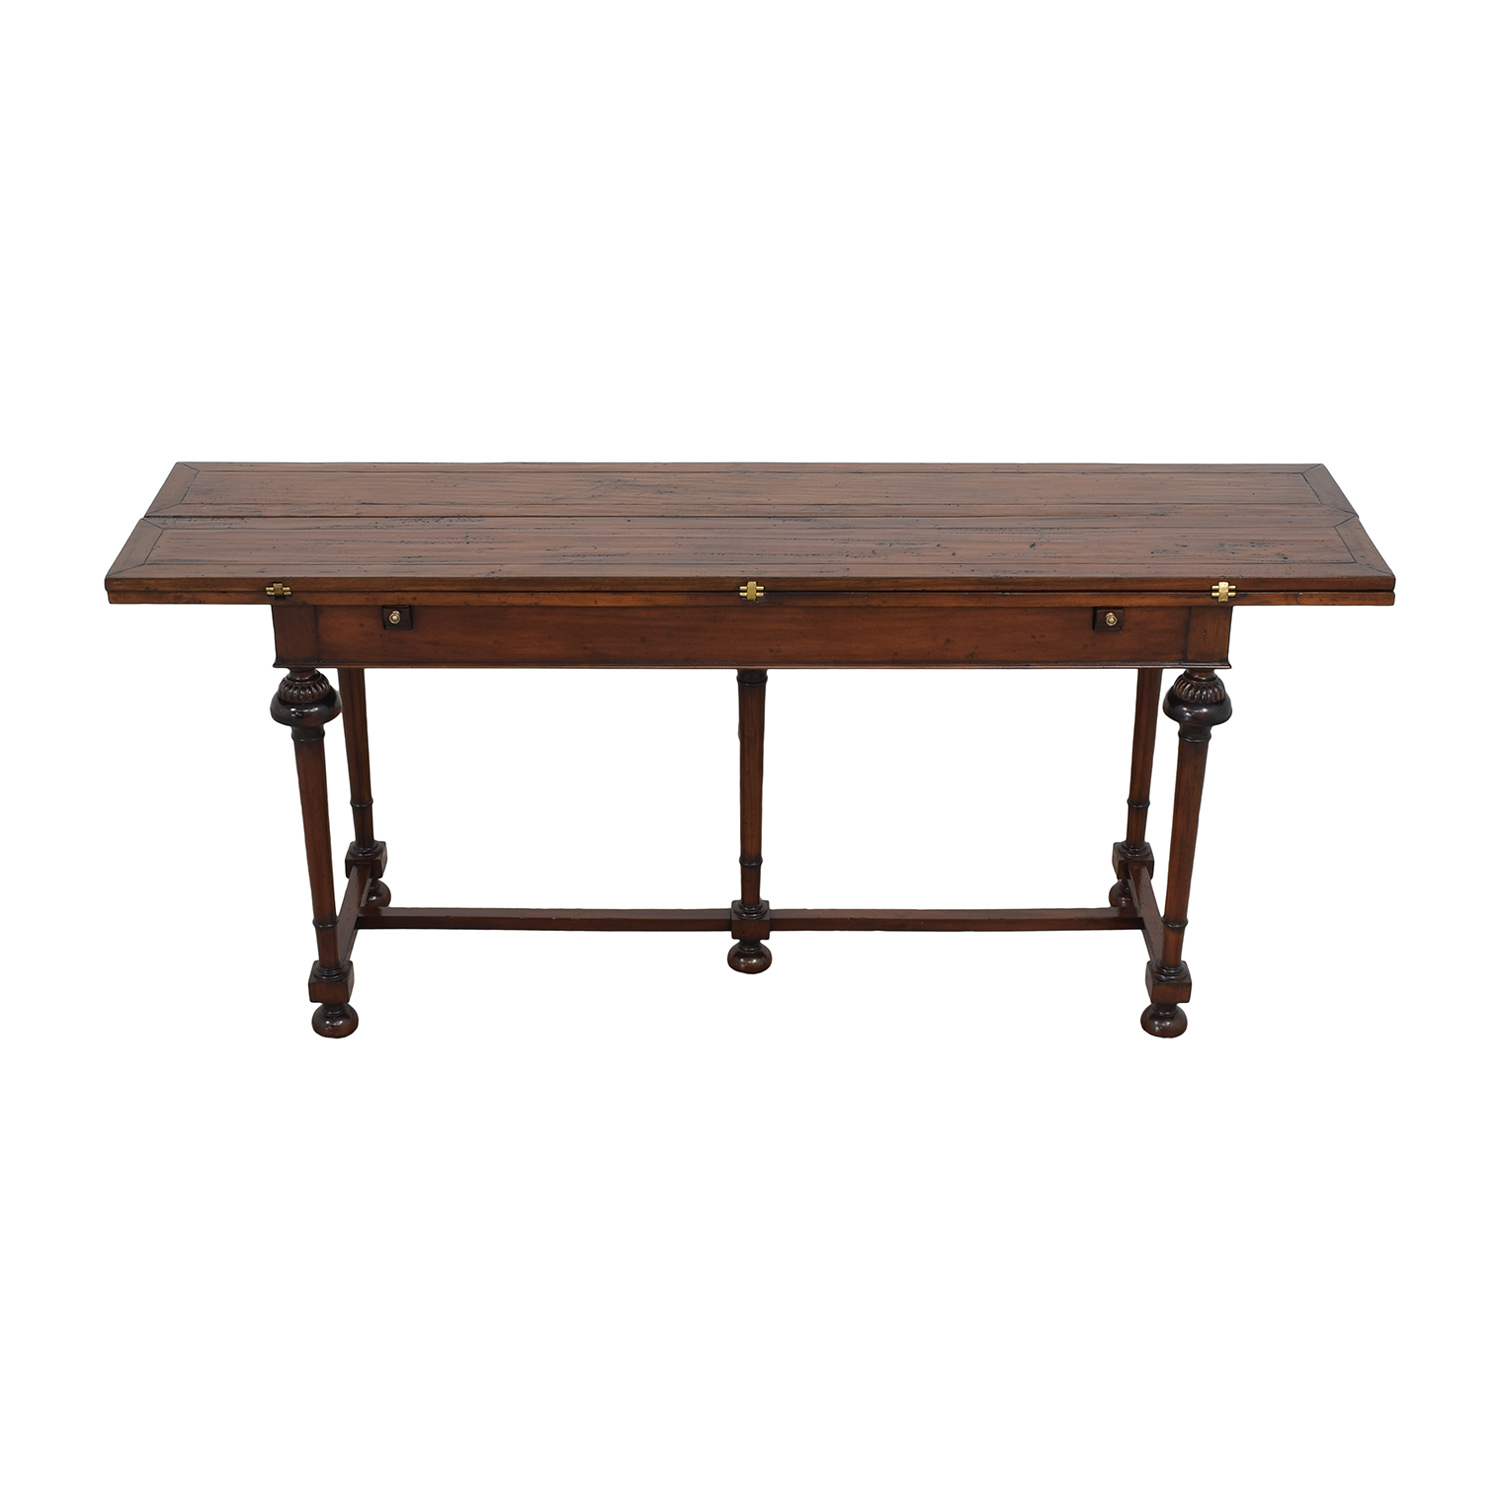 Harden Harden Collapsible Console Table on sale